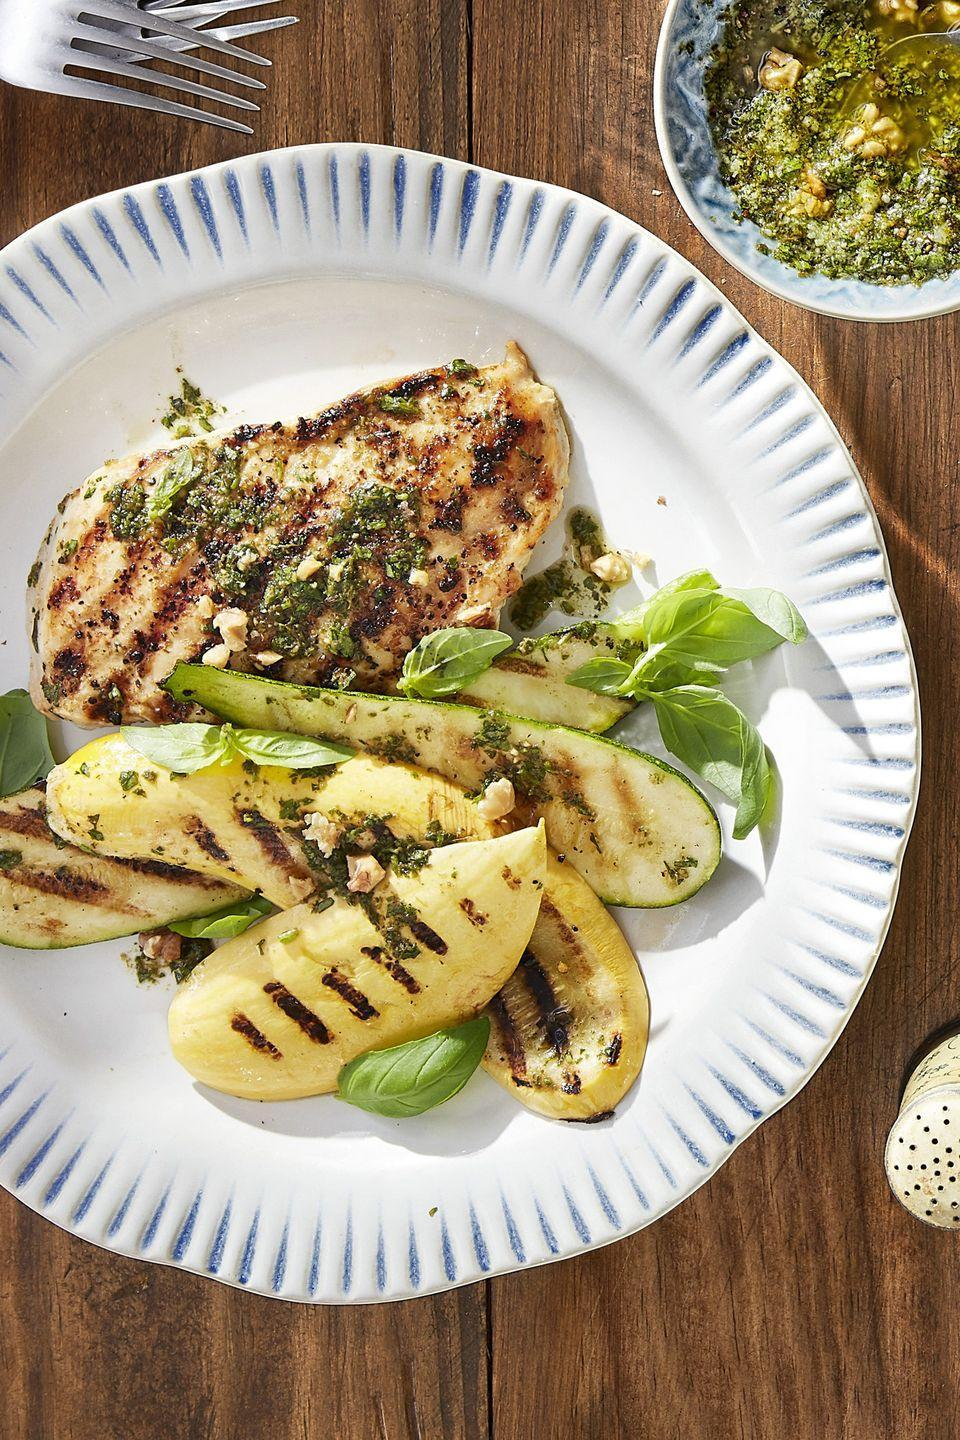 "<p>Let your grill do the work on the chicken and squash front while you prepare the pesto dressing.</p><p><a href=""https://www.countryliving.com/food-drinks/recipes/a44227/grilled-pesto-chicken-summer-squash-recipe/"" rel=""nofollow noopener"" target=""_blank"" data-ylk=""slk:Get the recipe."" class=""link rapid-noclick-resp""><strong>Get the recipe.</strong></a></p>"